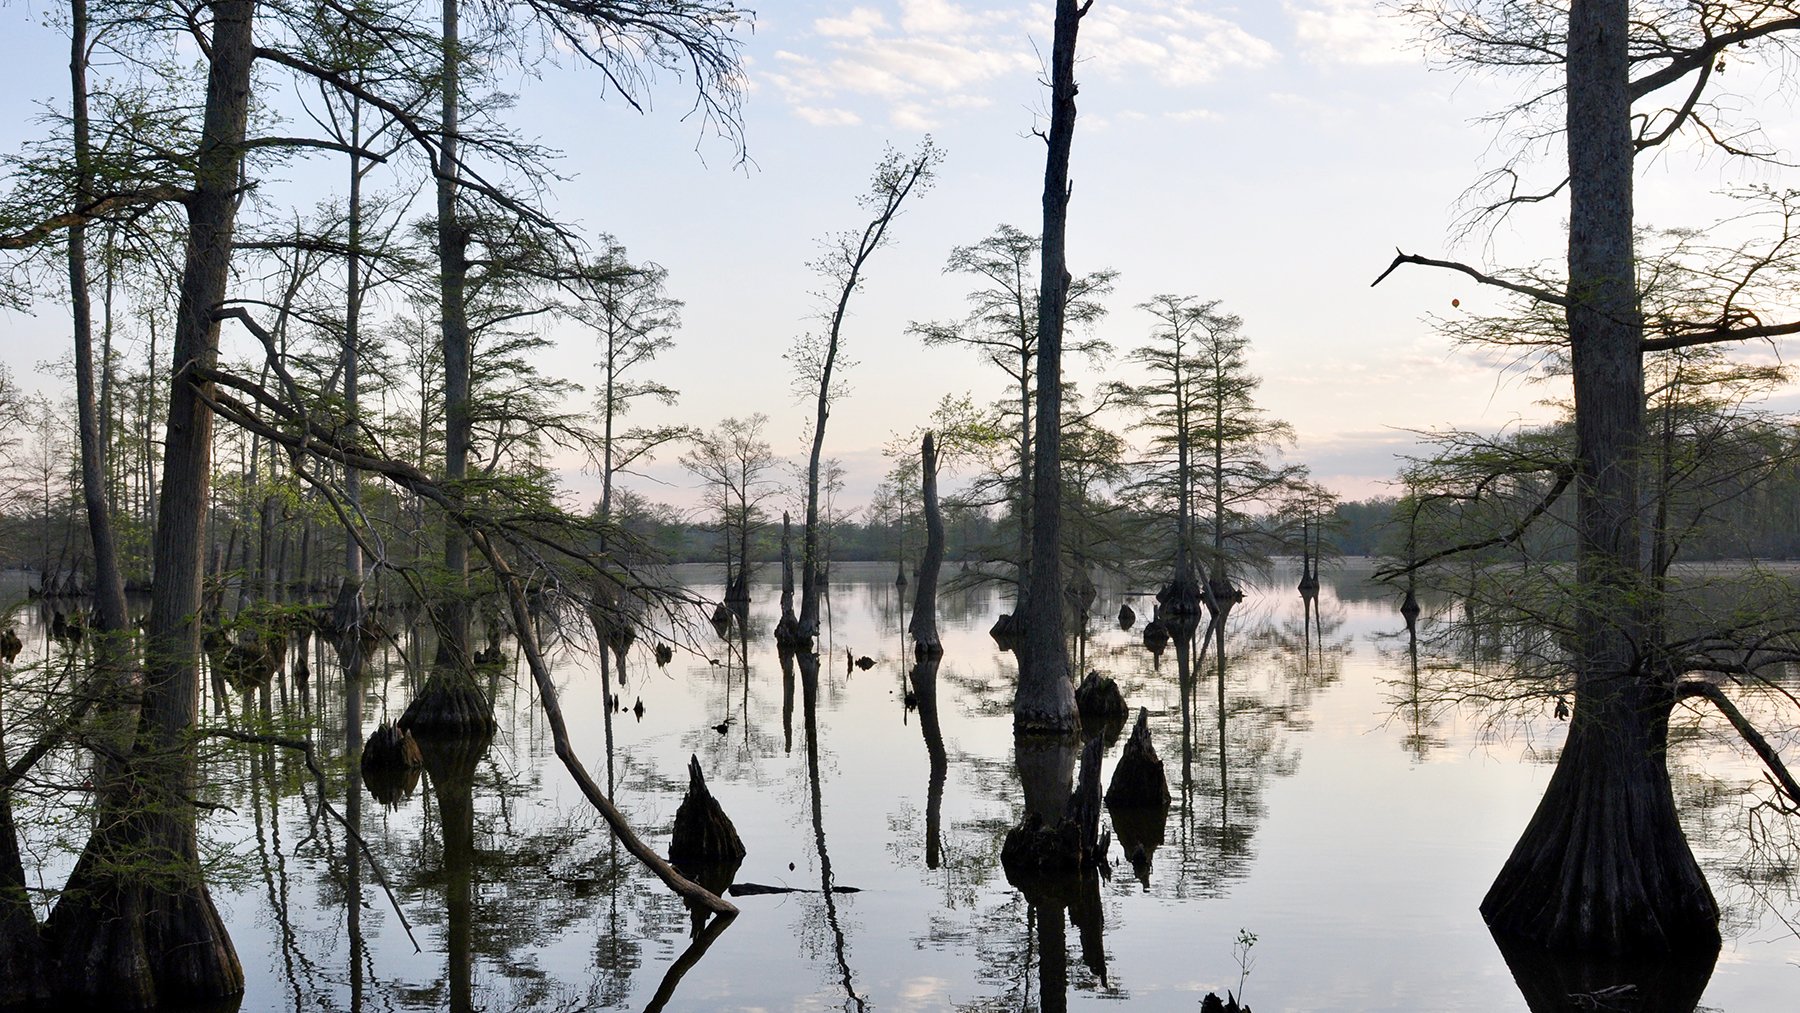 A cypress swamp near Snake Road in the Shawnee National Forest, near Harrisburg, Illinois. Photo by Mark A. Davis